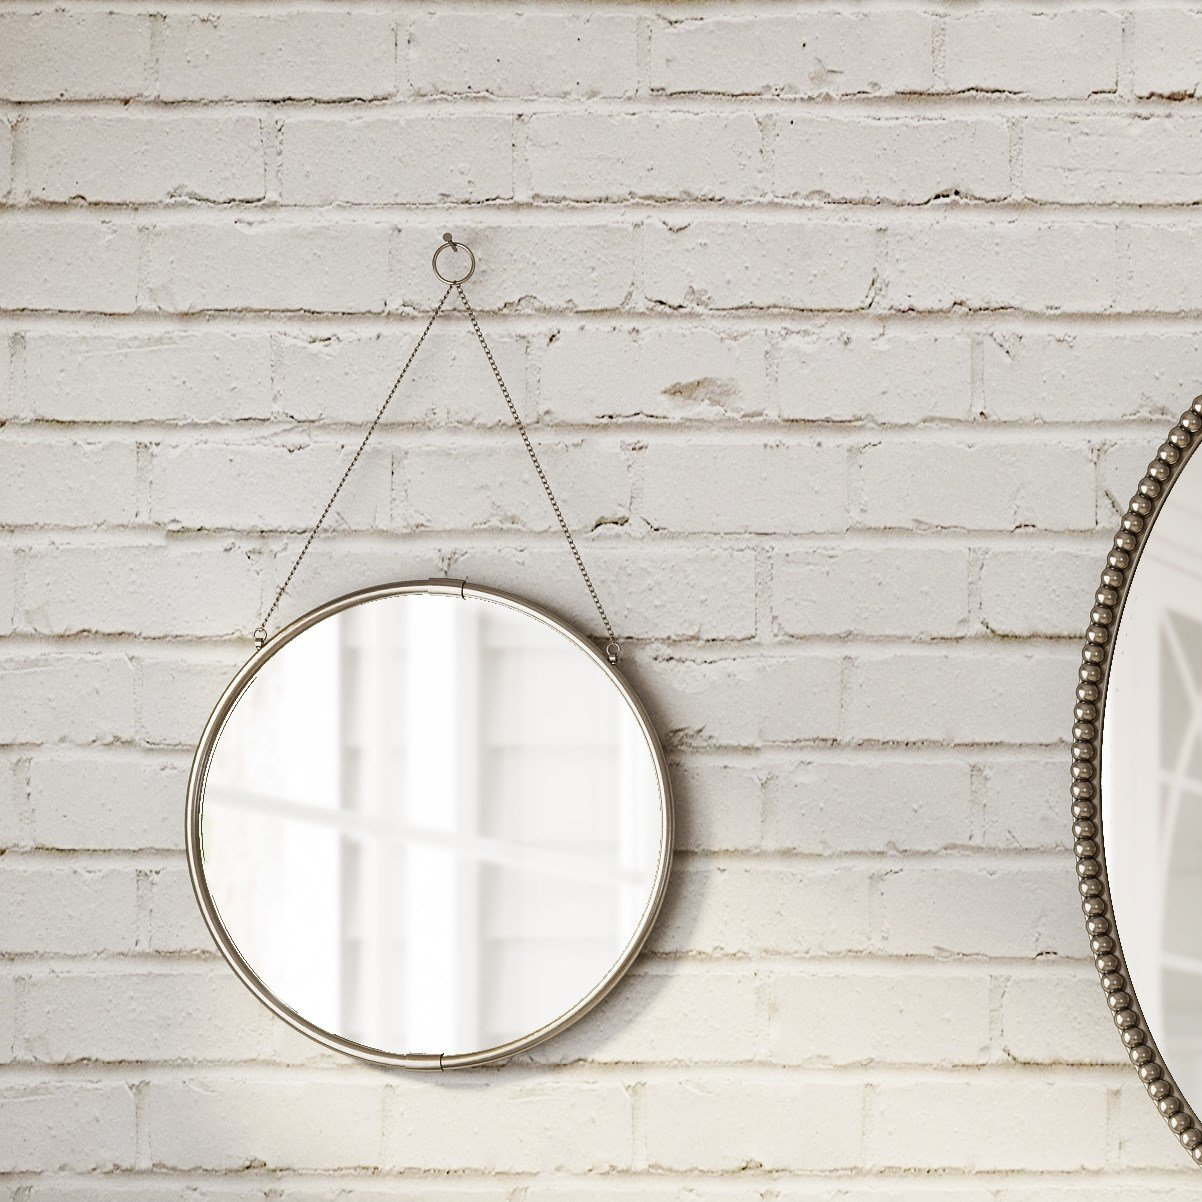 Brea Decorative Round Hanging Modern & Contemporary Wall Mirror With Regard To Decorative Round Wall Mirrors (View 16 of 20)